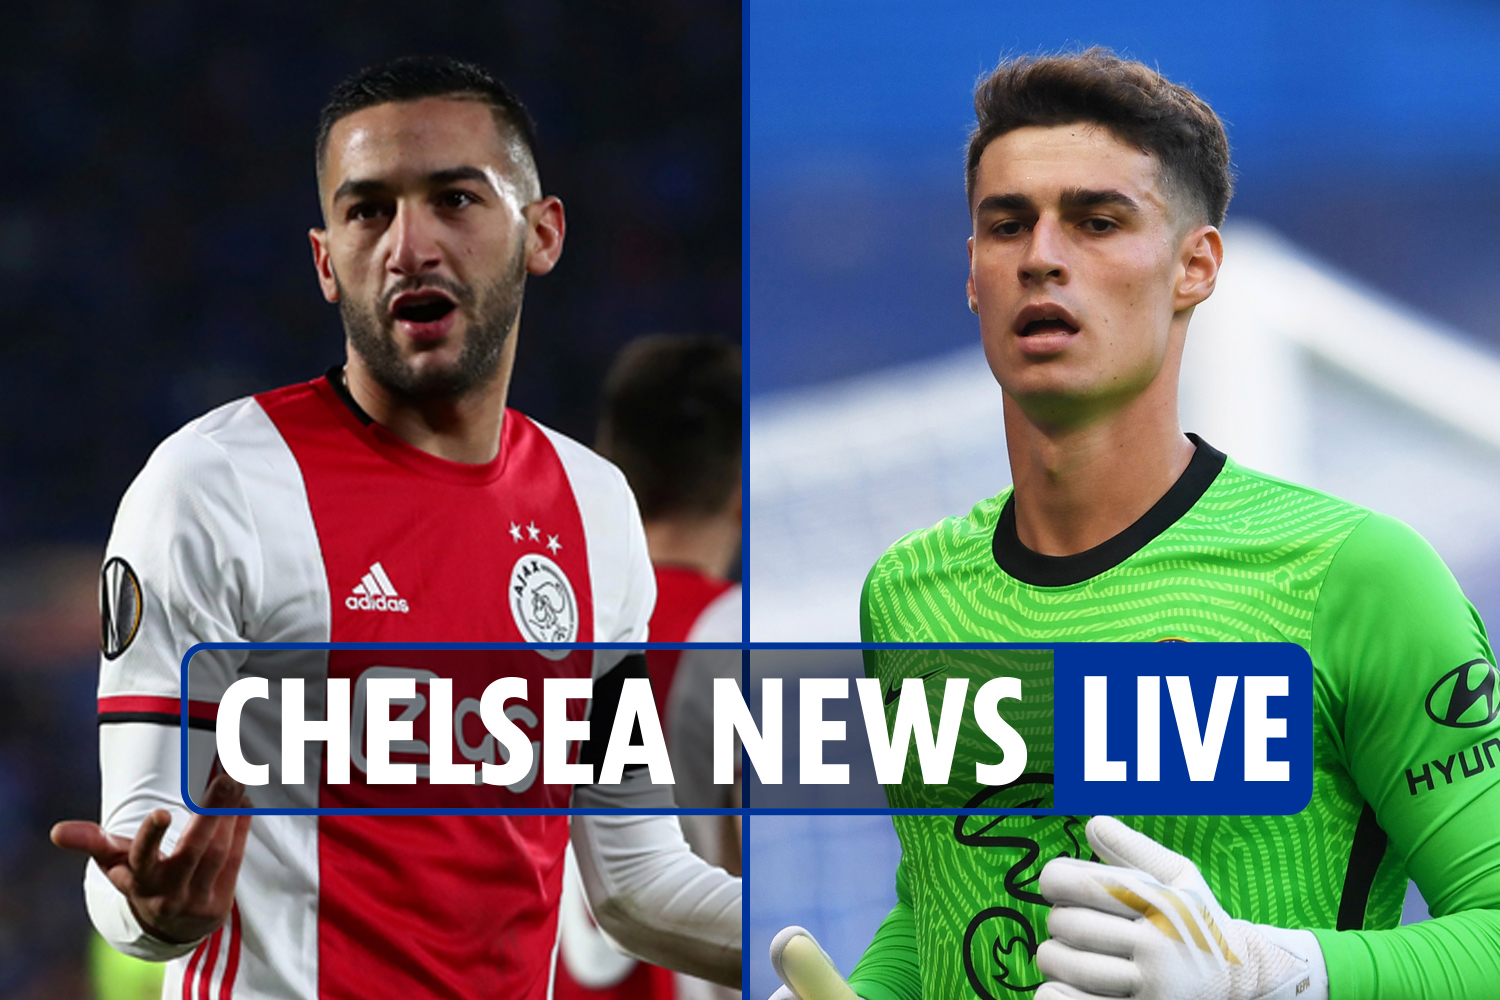 9pm Chelsea news LIVE: Werner in the goals, Southampton late draw, defensive woes, Jorginho deal, Donnarumma linked